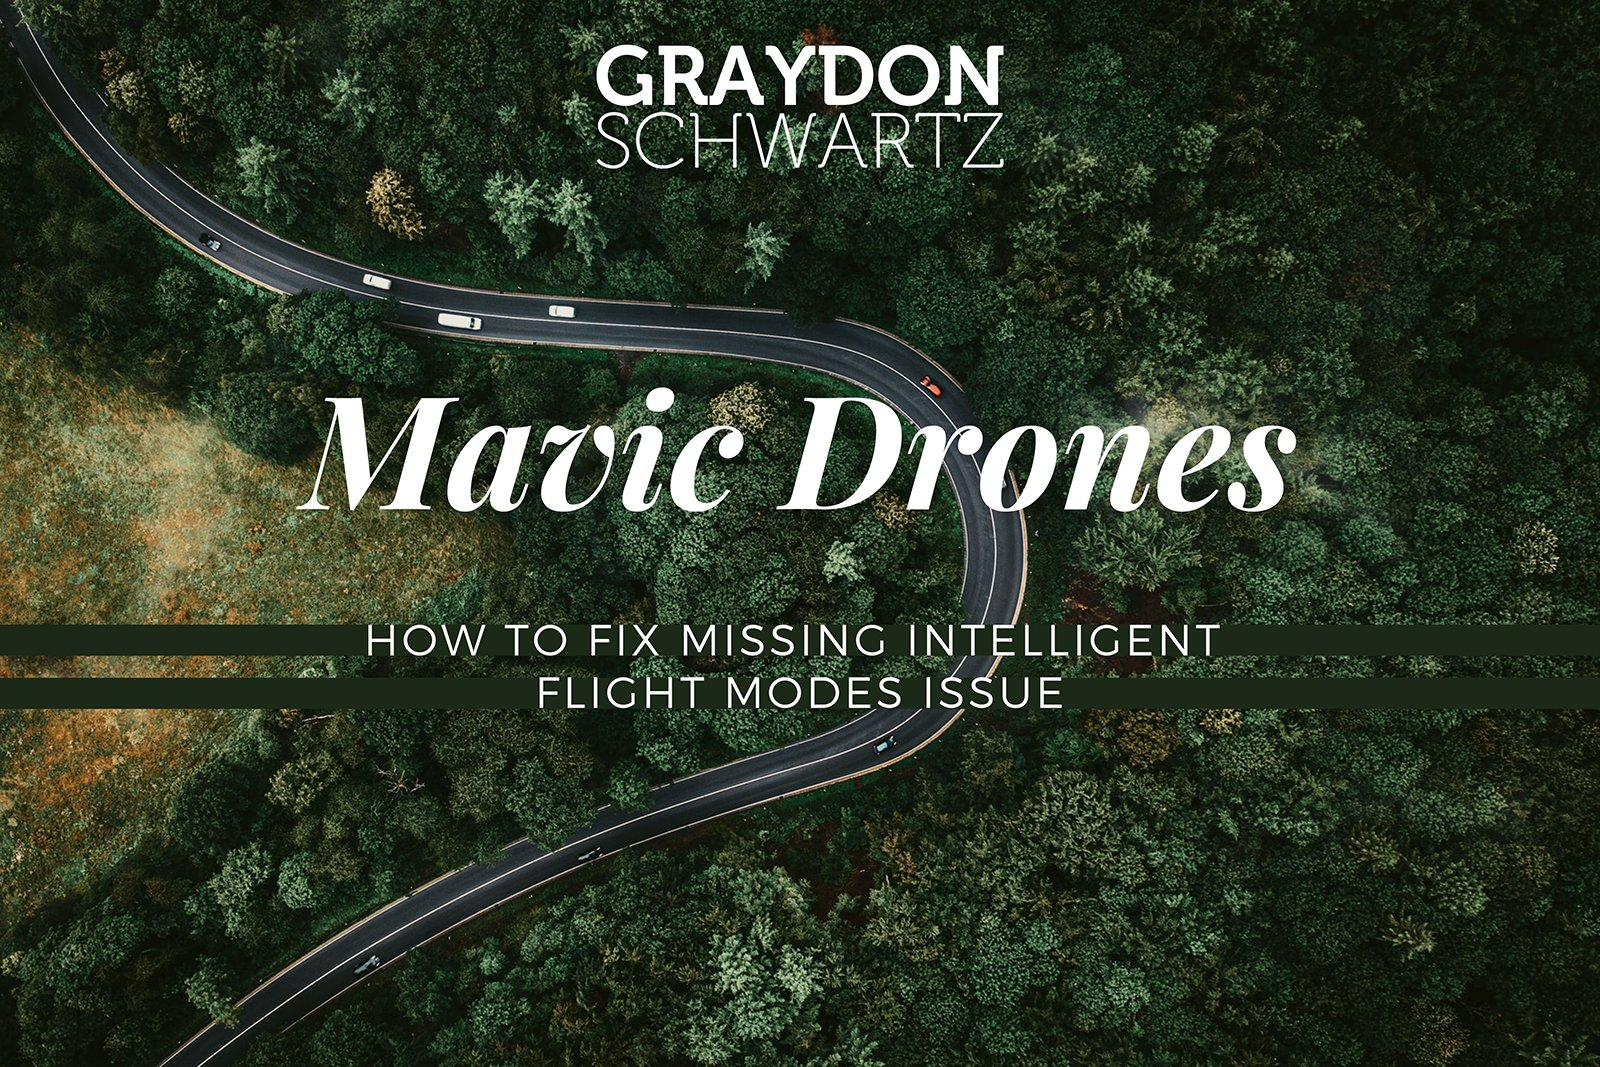 Mavic Drones: How to Fix Missing Intelligent Flight Modes Issue